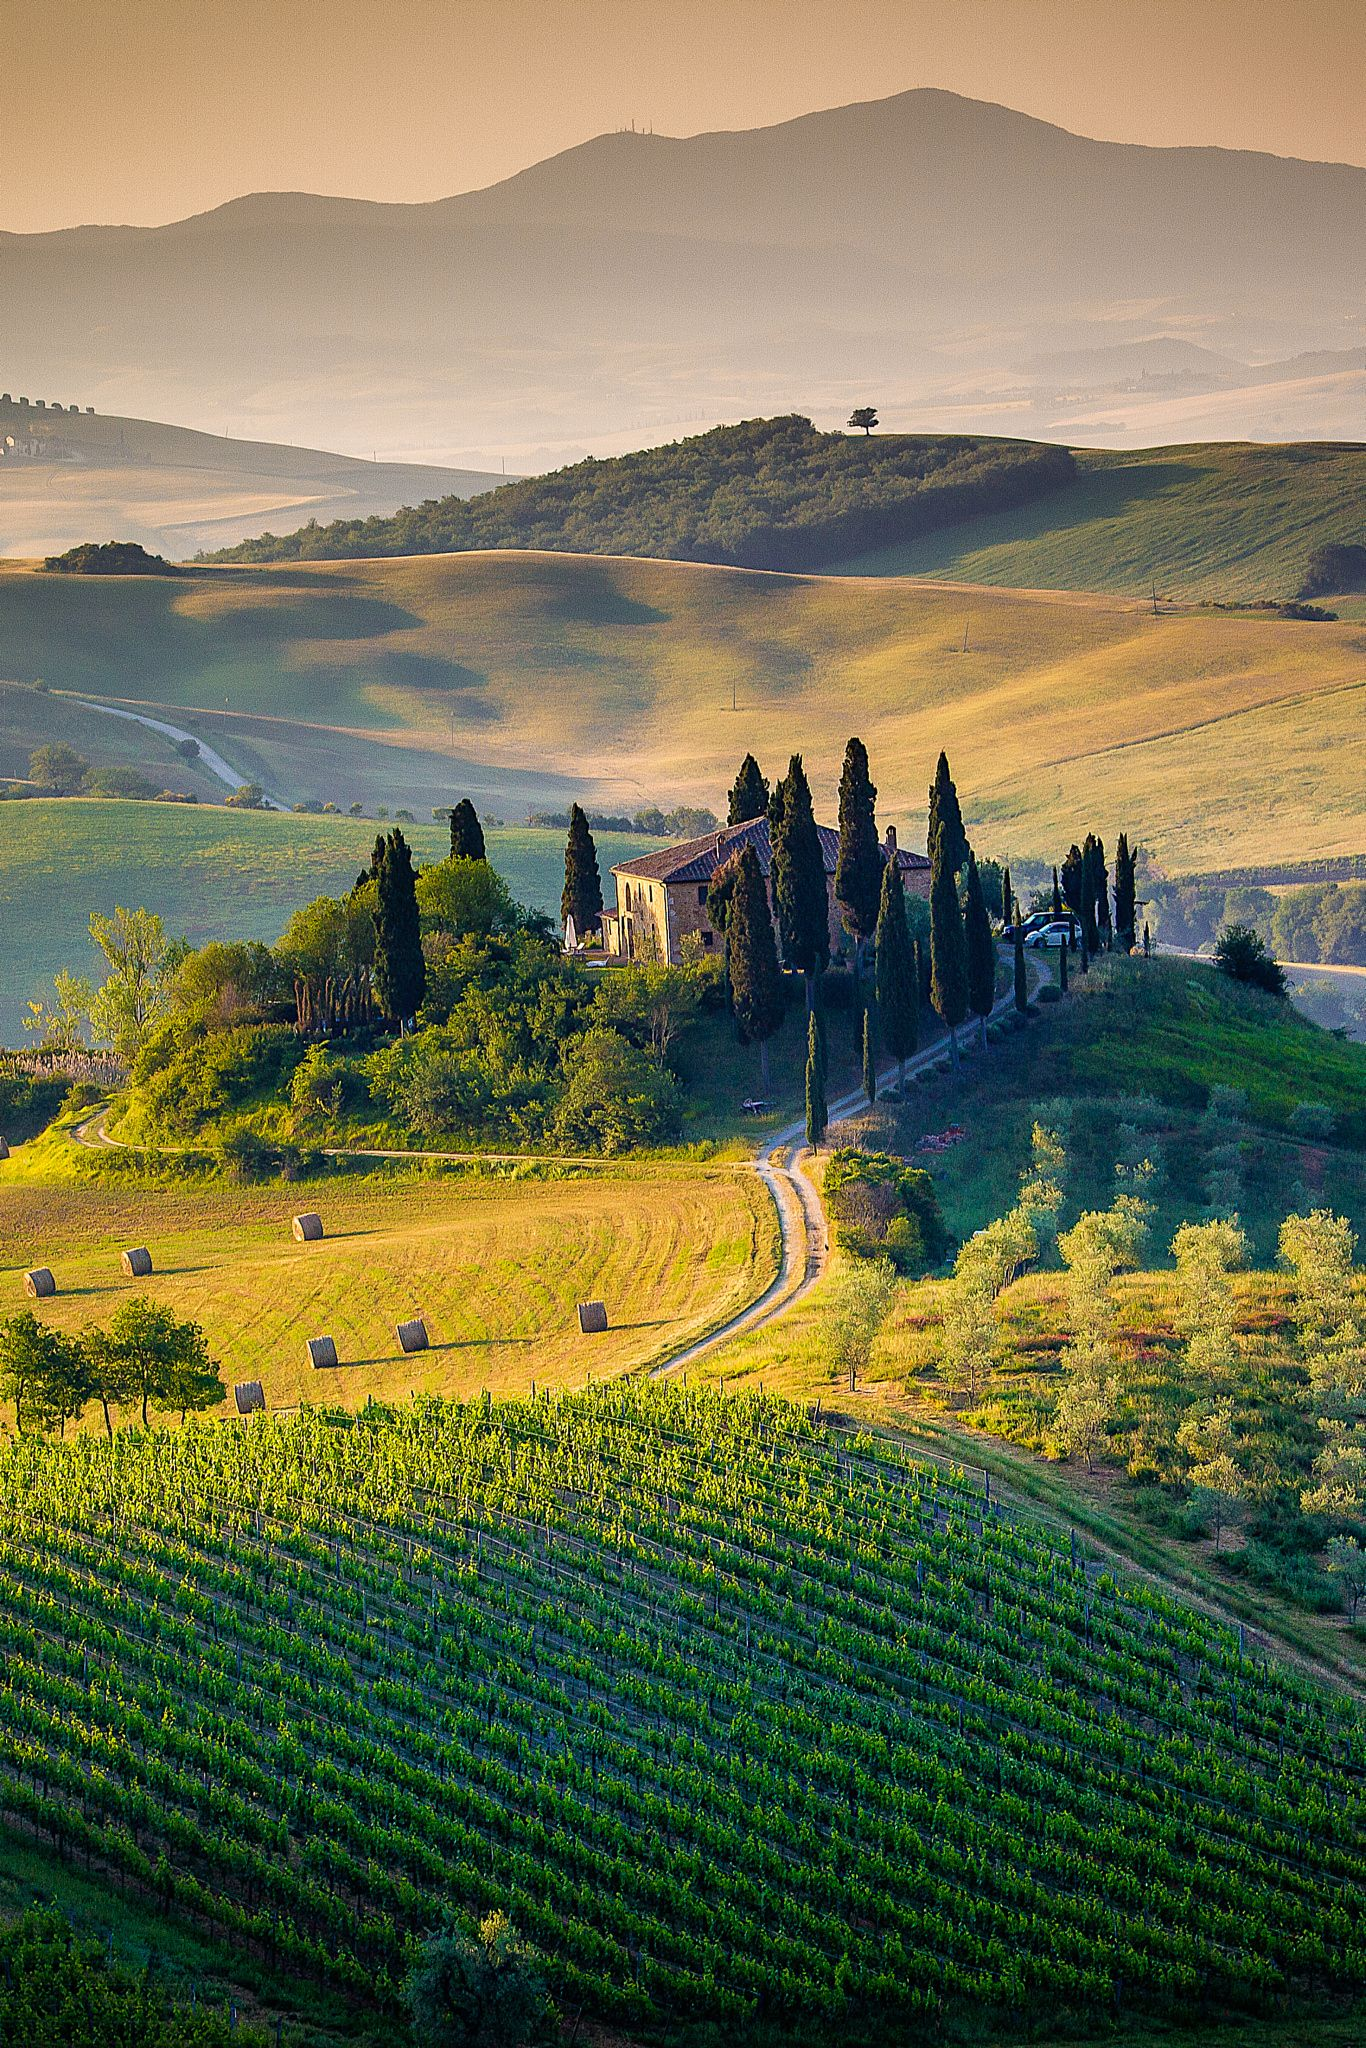 Tuscany, Italy. Portrait Vertical View Of A Beautiful And